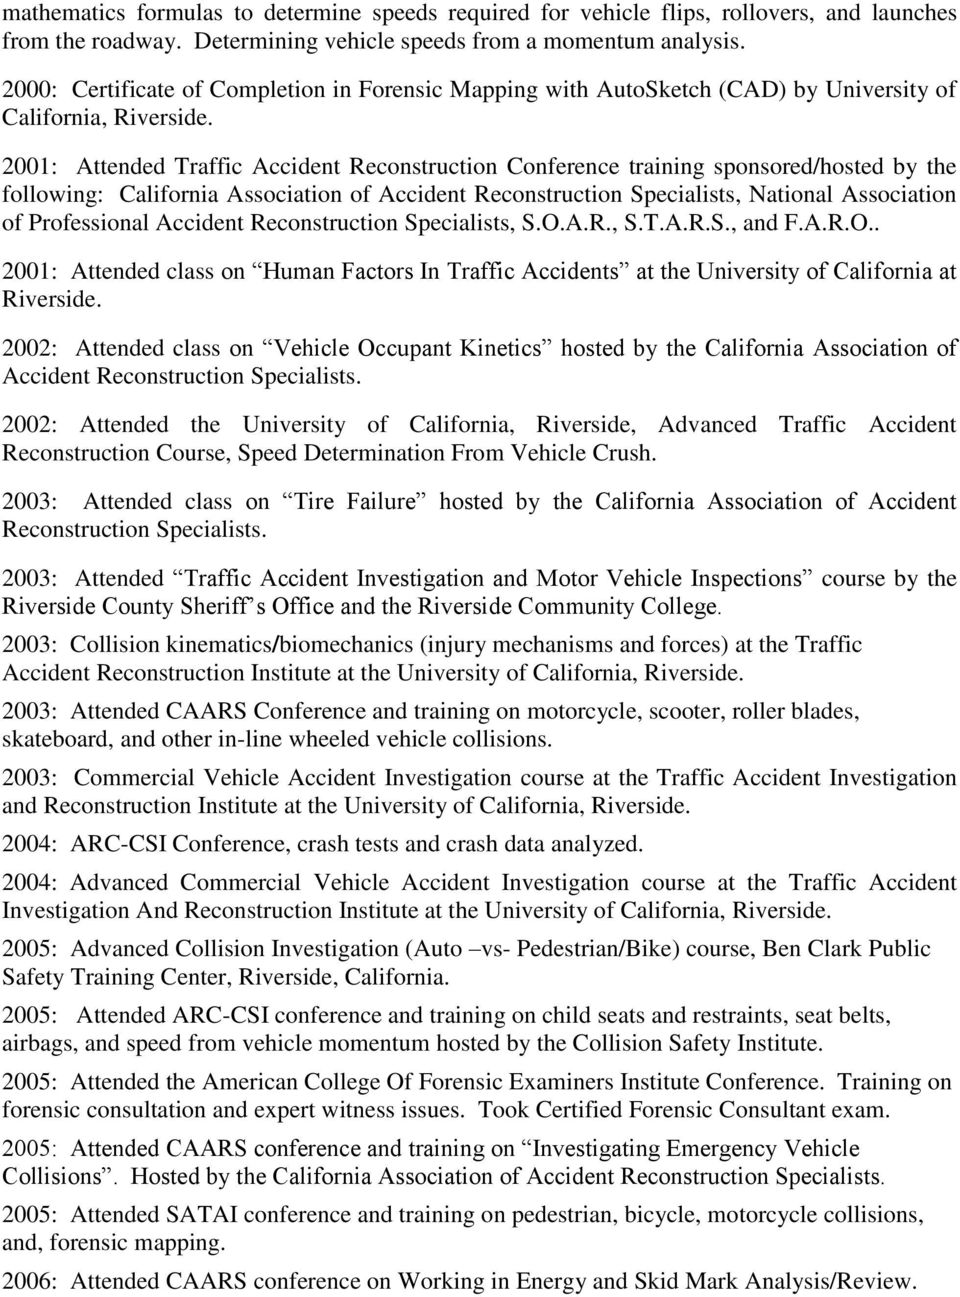 2001: Attended Traffic Accident Reconstruction Conference training sponsored/hosted by the following: California Association of Accident Reconstruction Specialists, National Association of